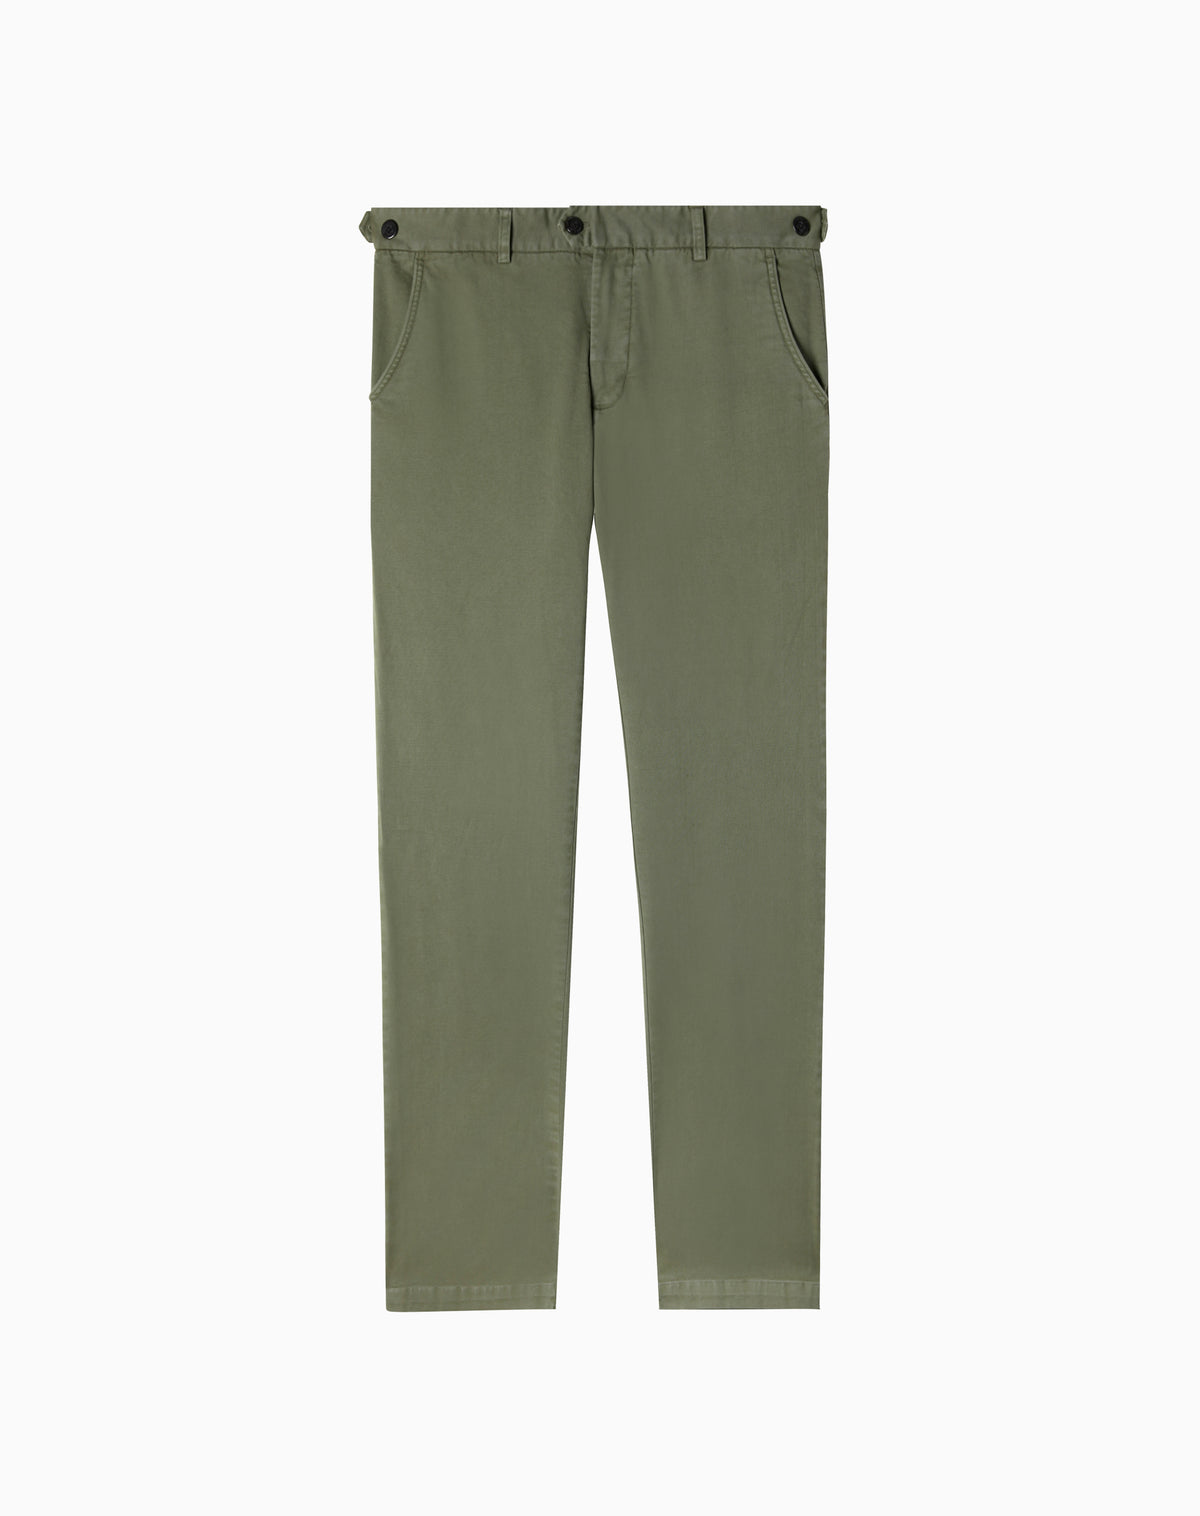 Gates Pant in Olive